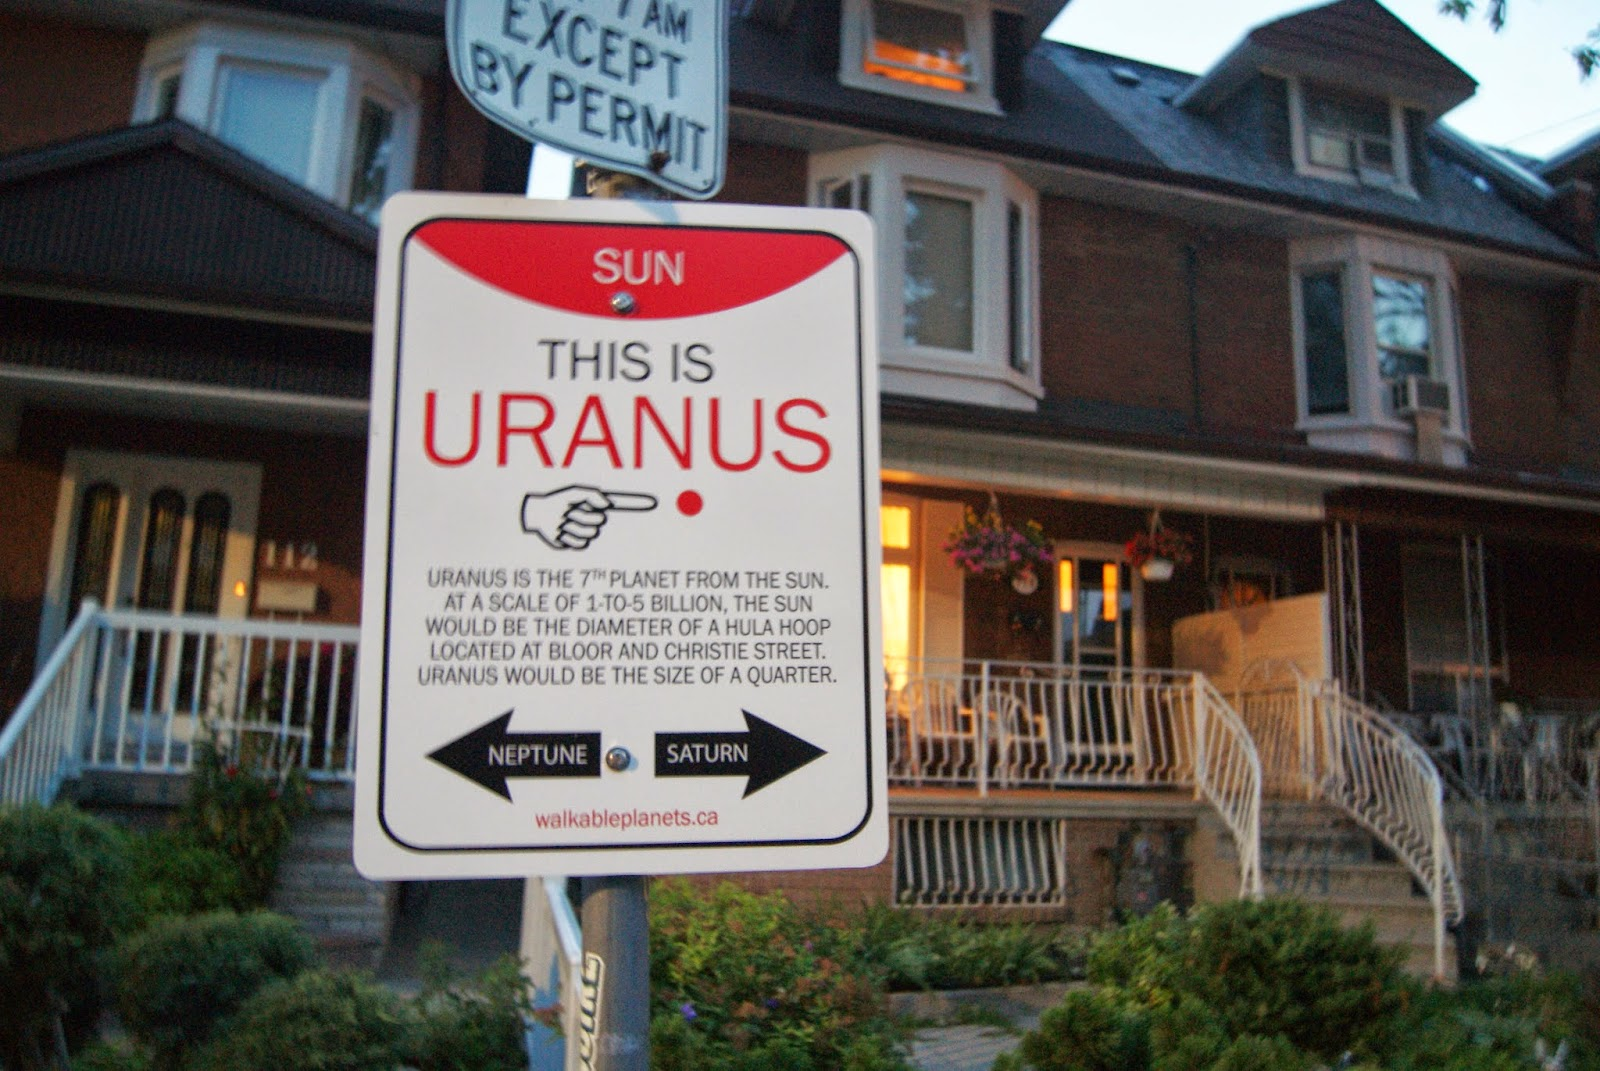 Uranus Wayfinding Sign from Walkable Planets scale solar system by Jode Roberts in Toronto, Public, Installation, Community, Project, Intervention, Explore, Grace Street, Gore Vale Avenue, Jane's Walk, 100-in1 Day, Ontario, Canada, Culture, Lifestyle, Galaxy, Art, Artist